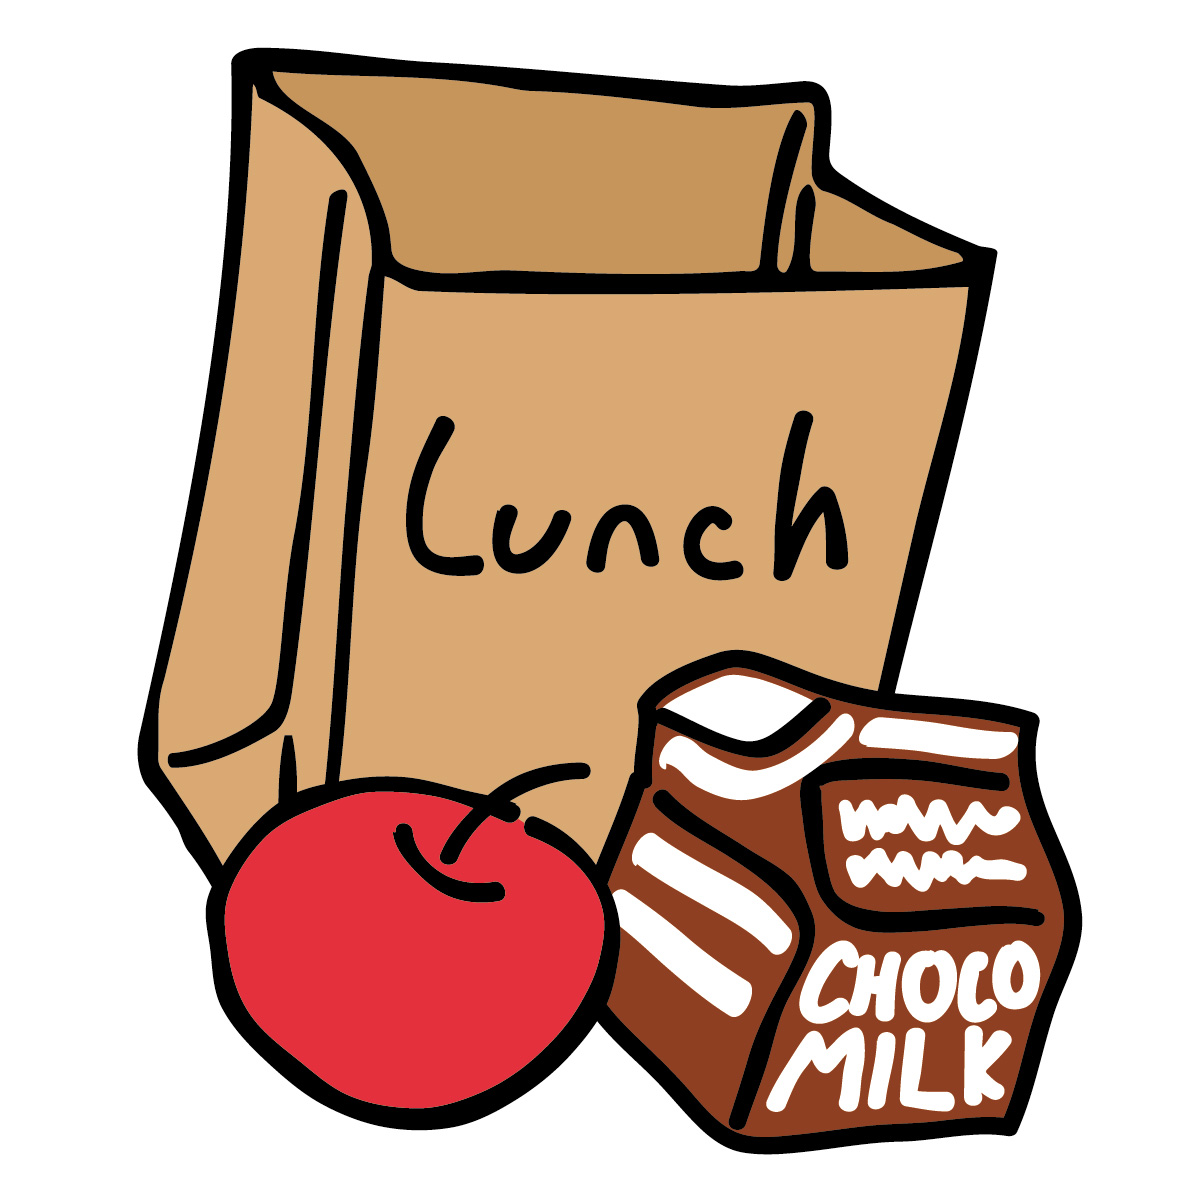 Lunch orders clipart.